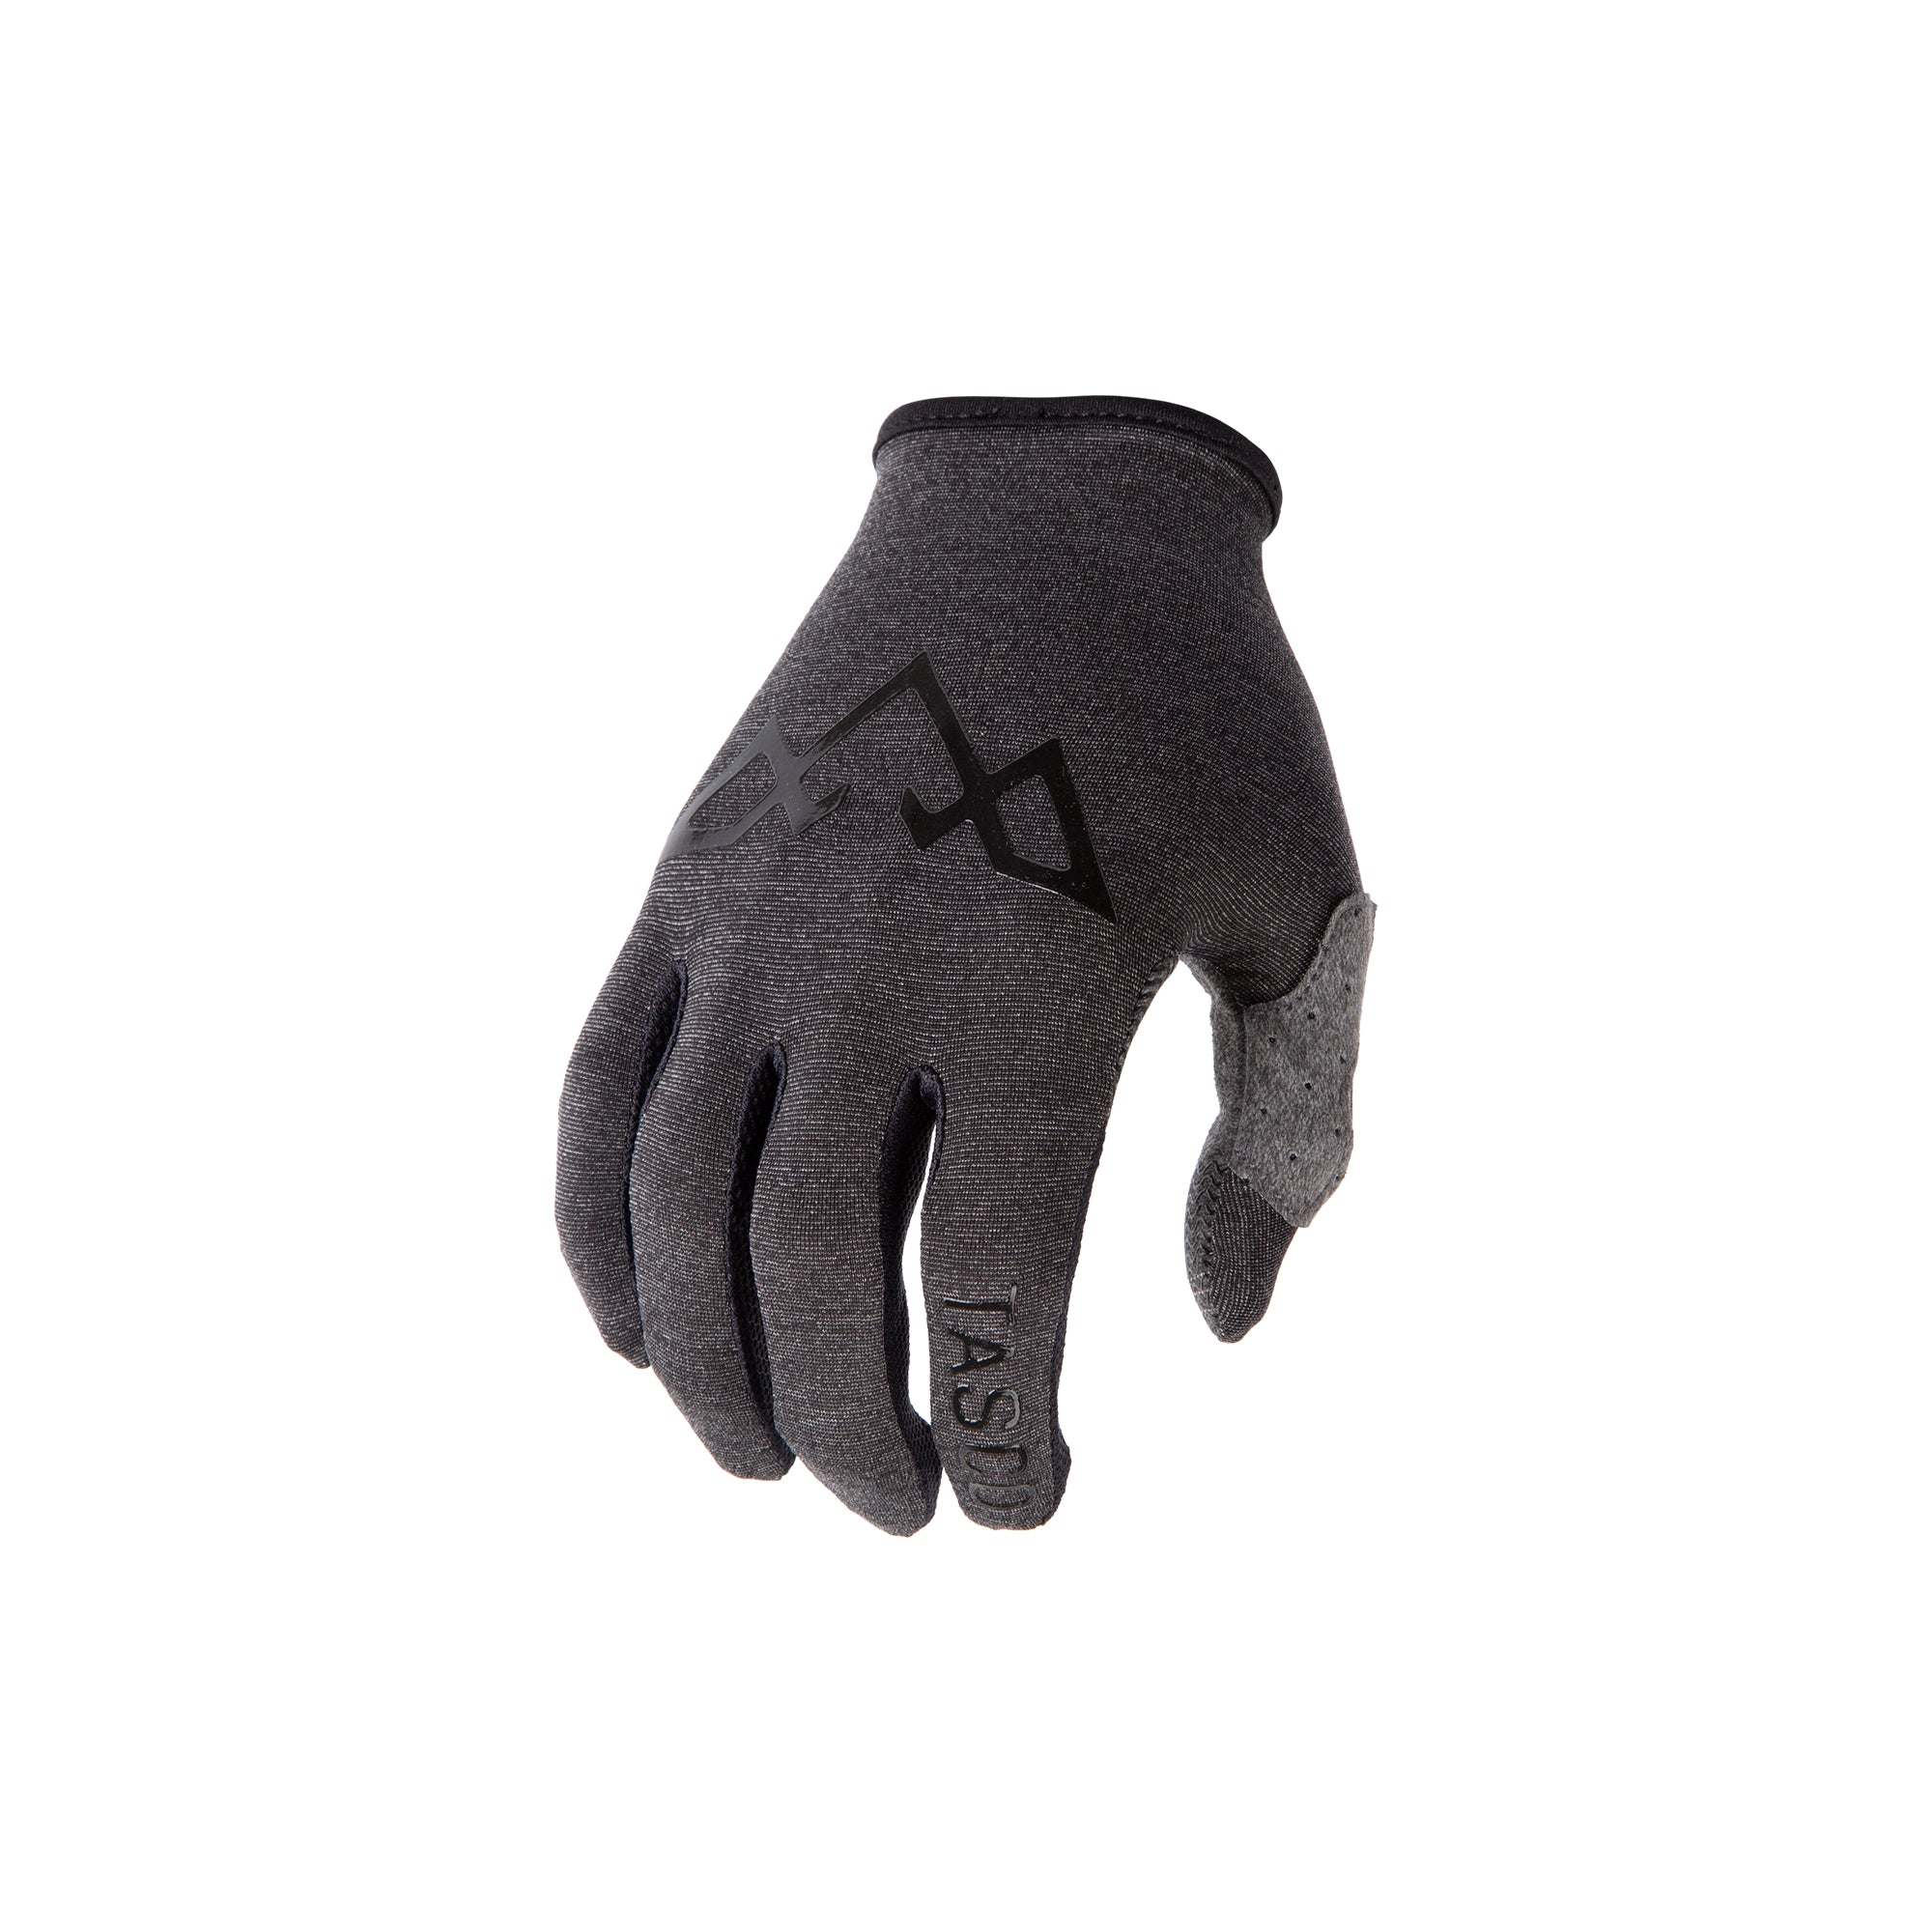 RECON Ultralight Gloves - The Stealth - MTB Lifestyle | TASCO MTB